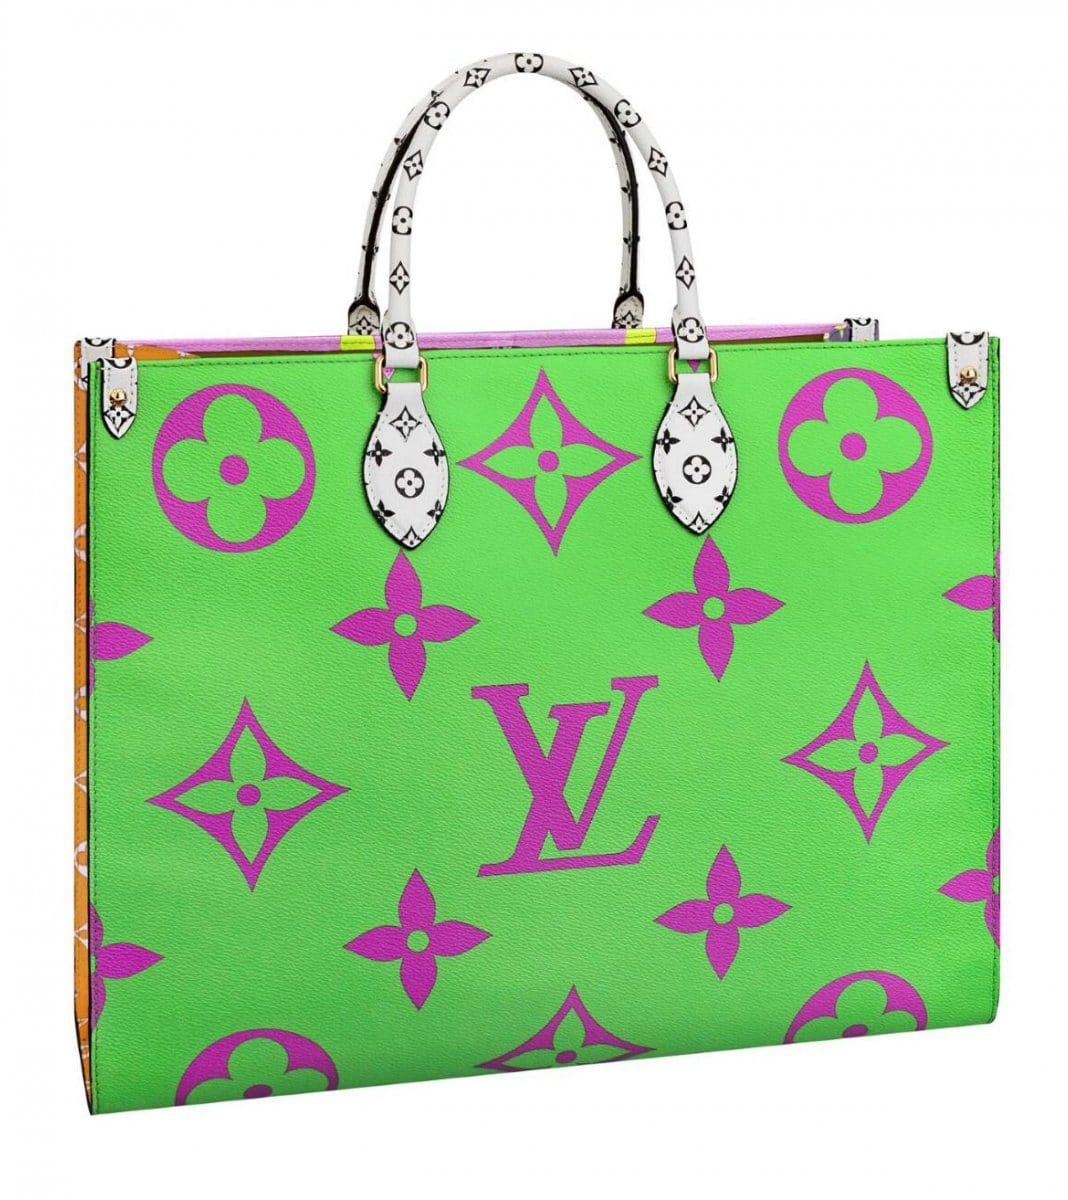 9dec3f131d76 Louis Vuitton Geant Bag Collection From Spring Summer 2019